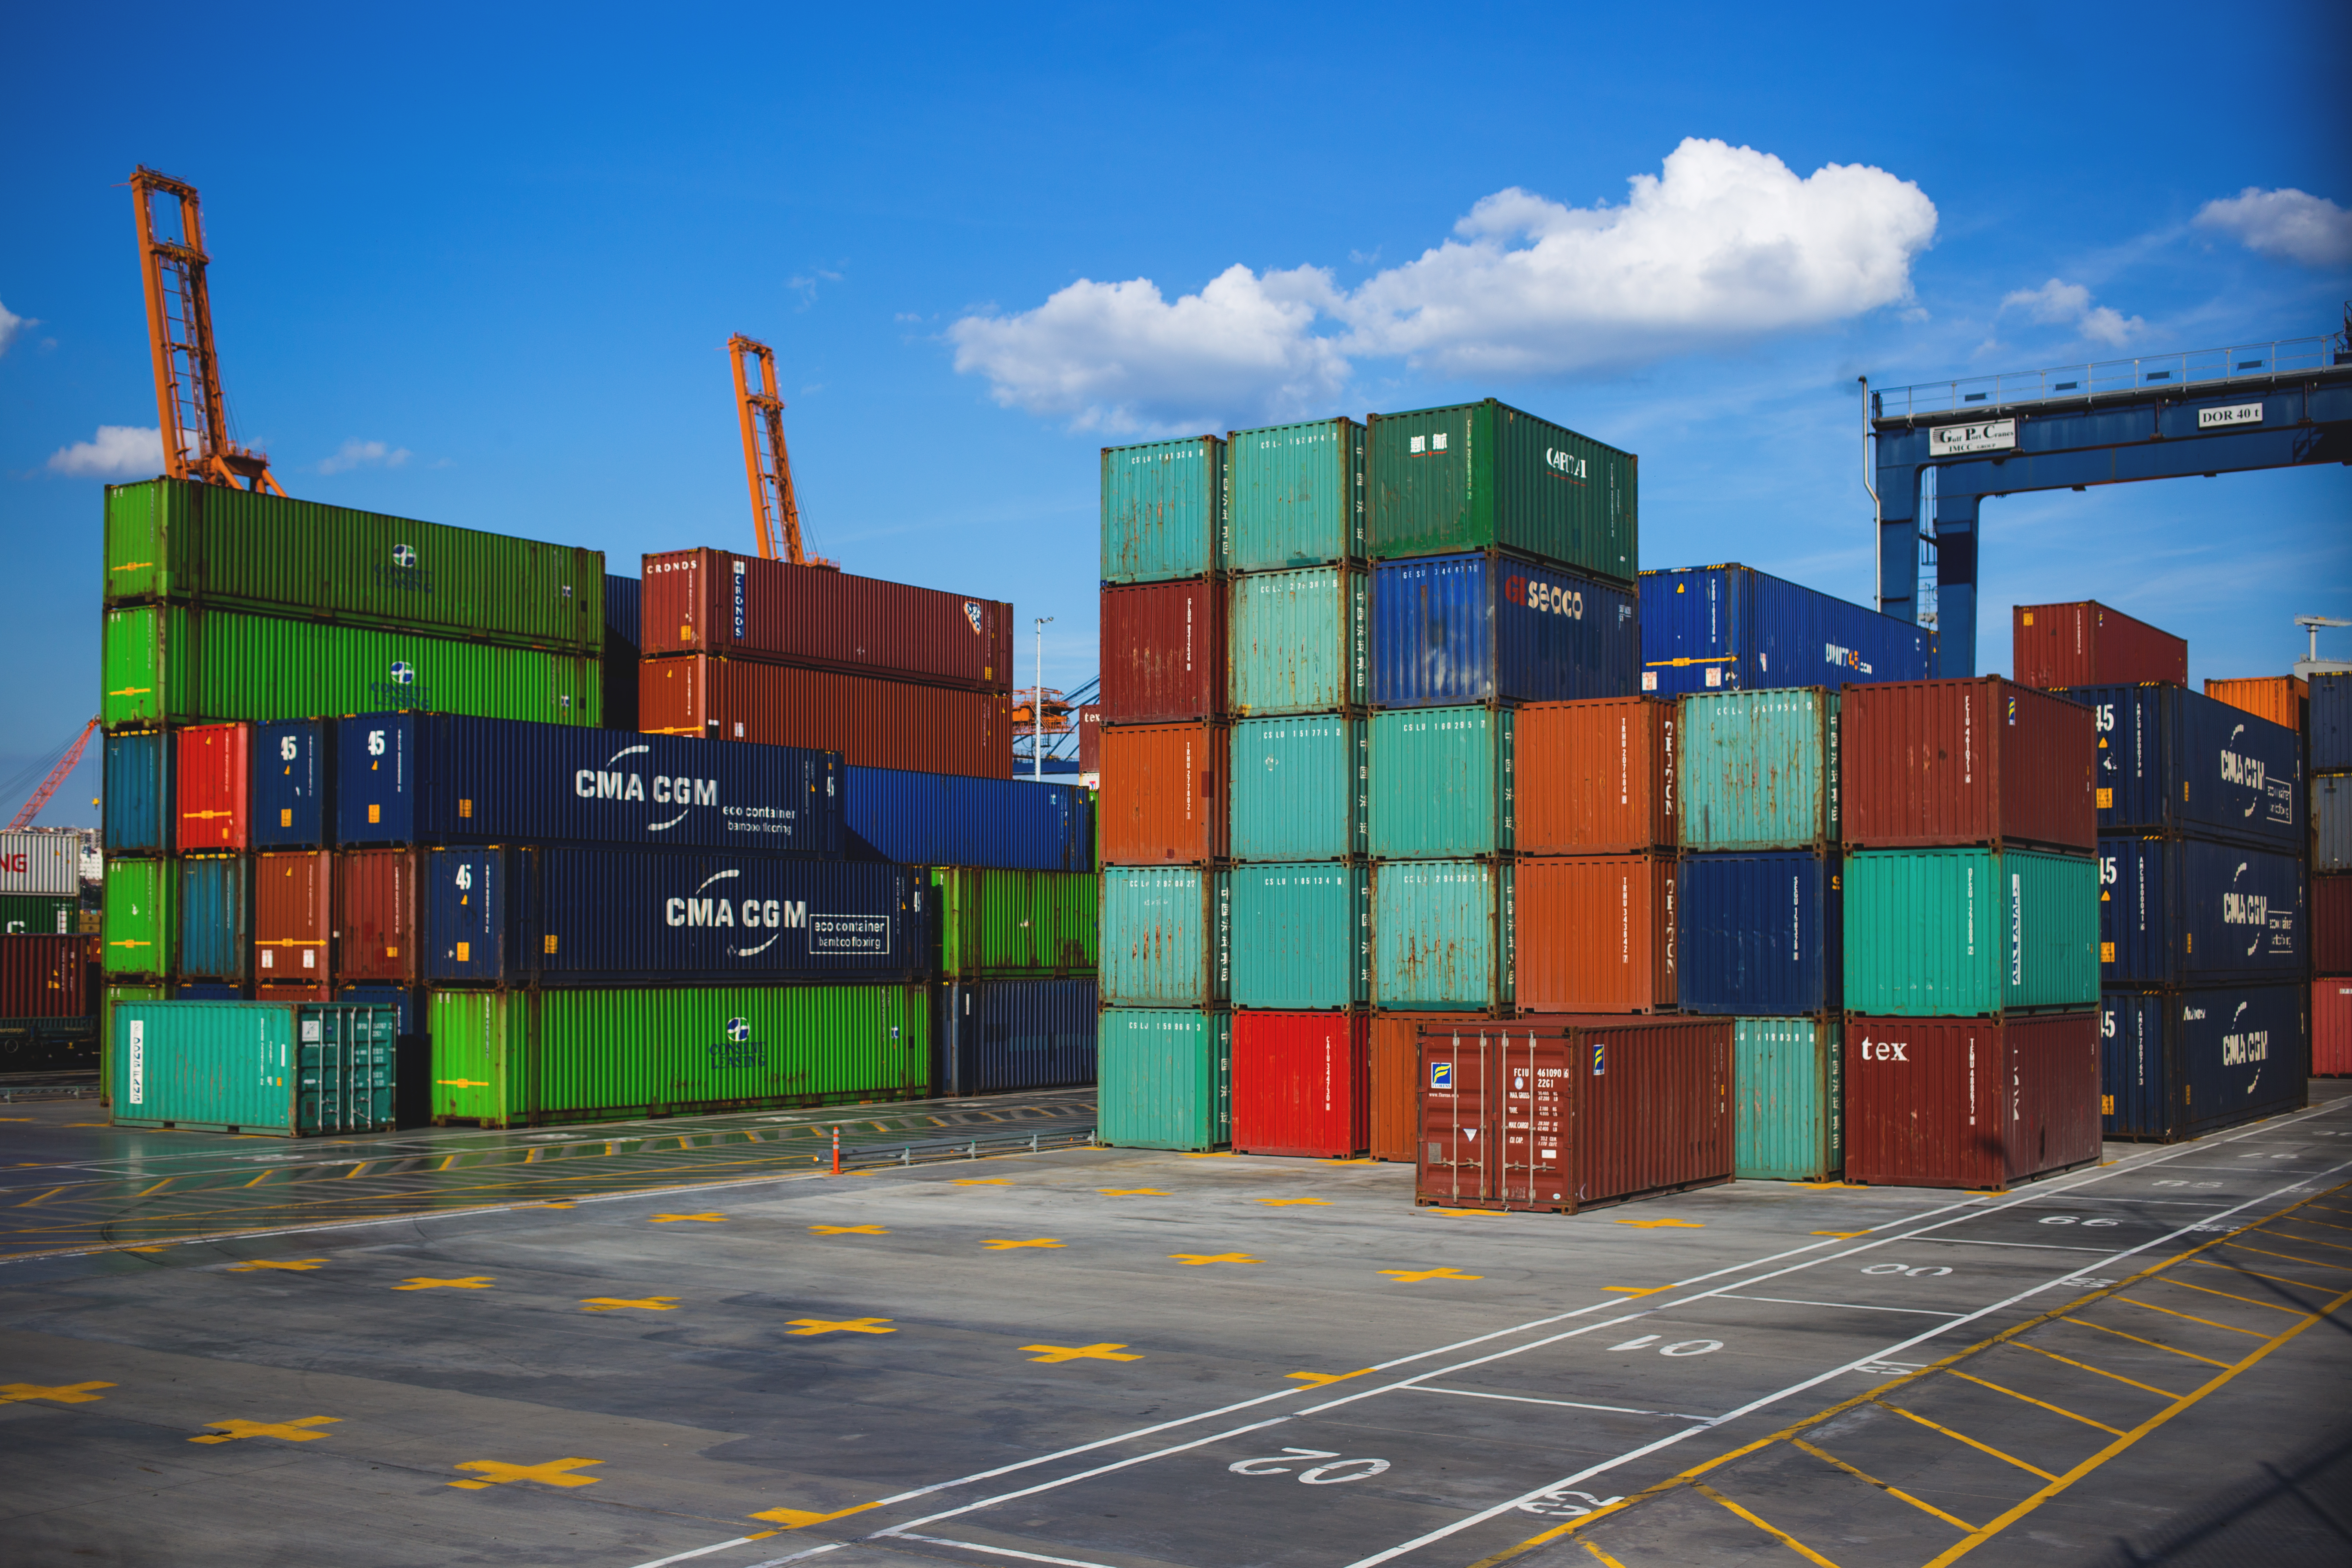 Free Stock Photos Of Shipping Containers Pexels - Shipping containers